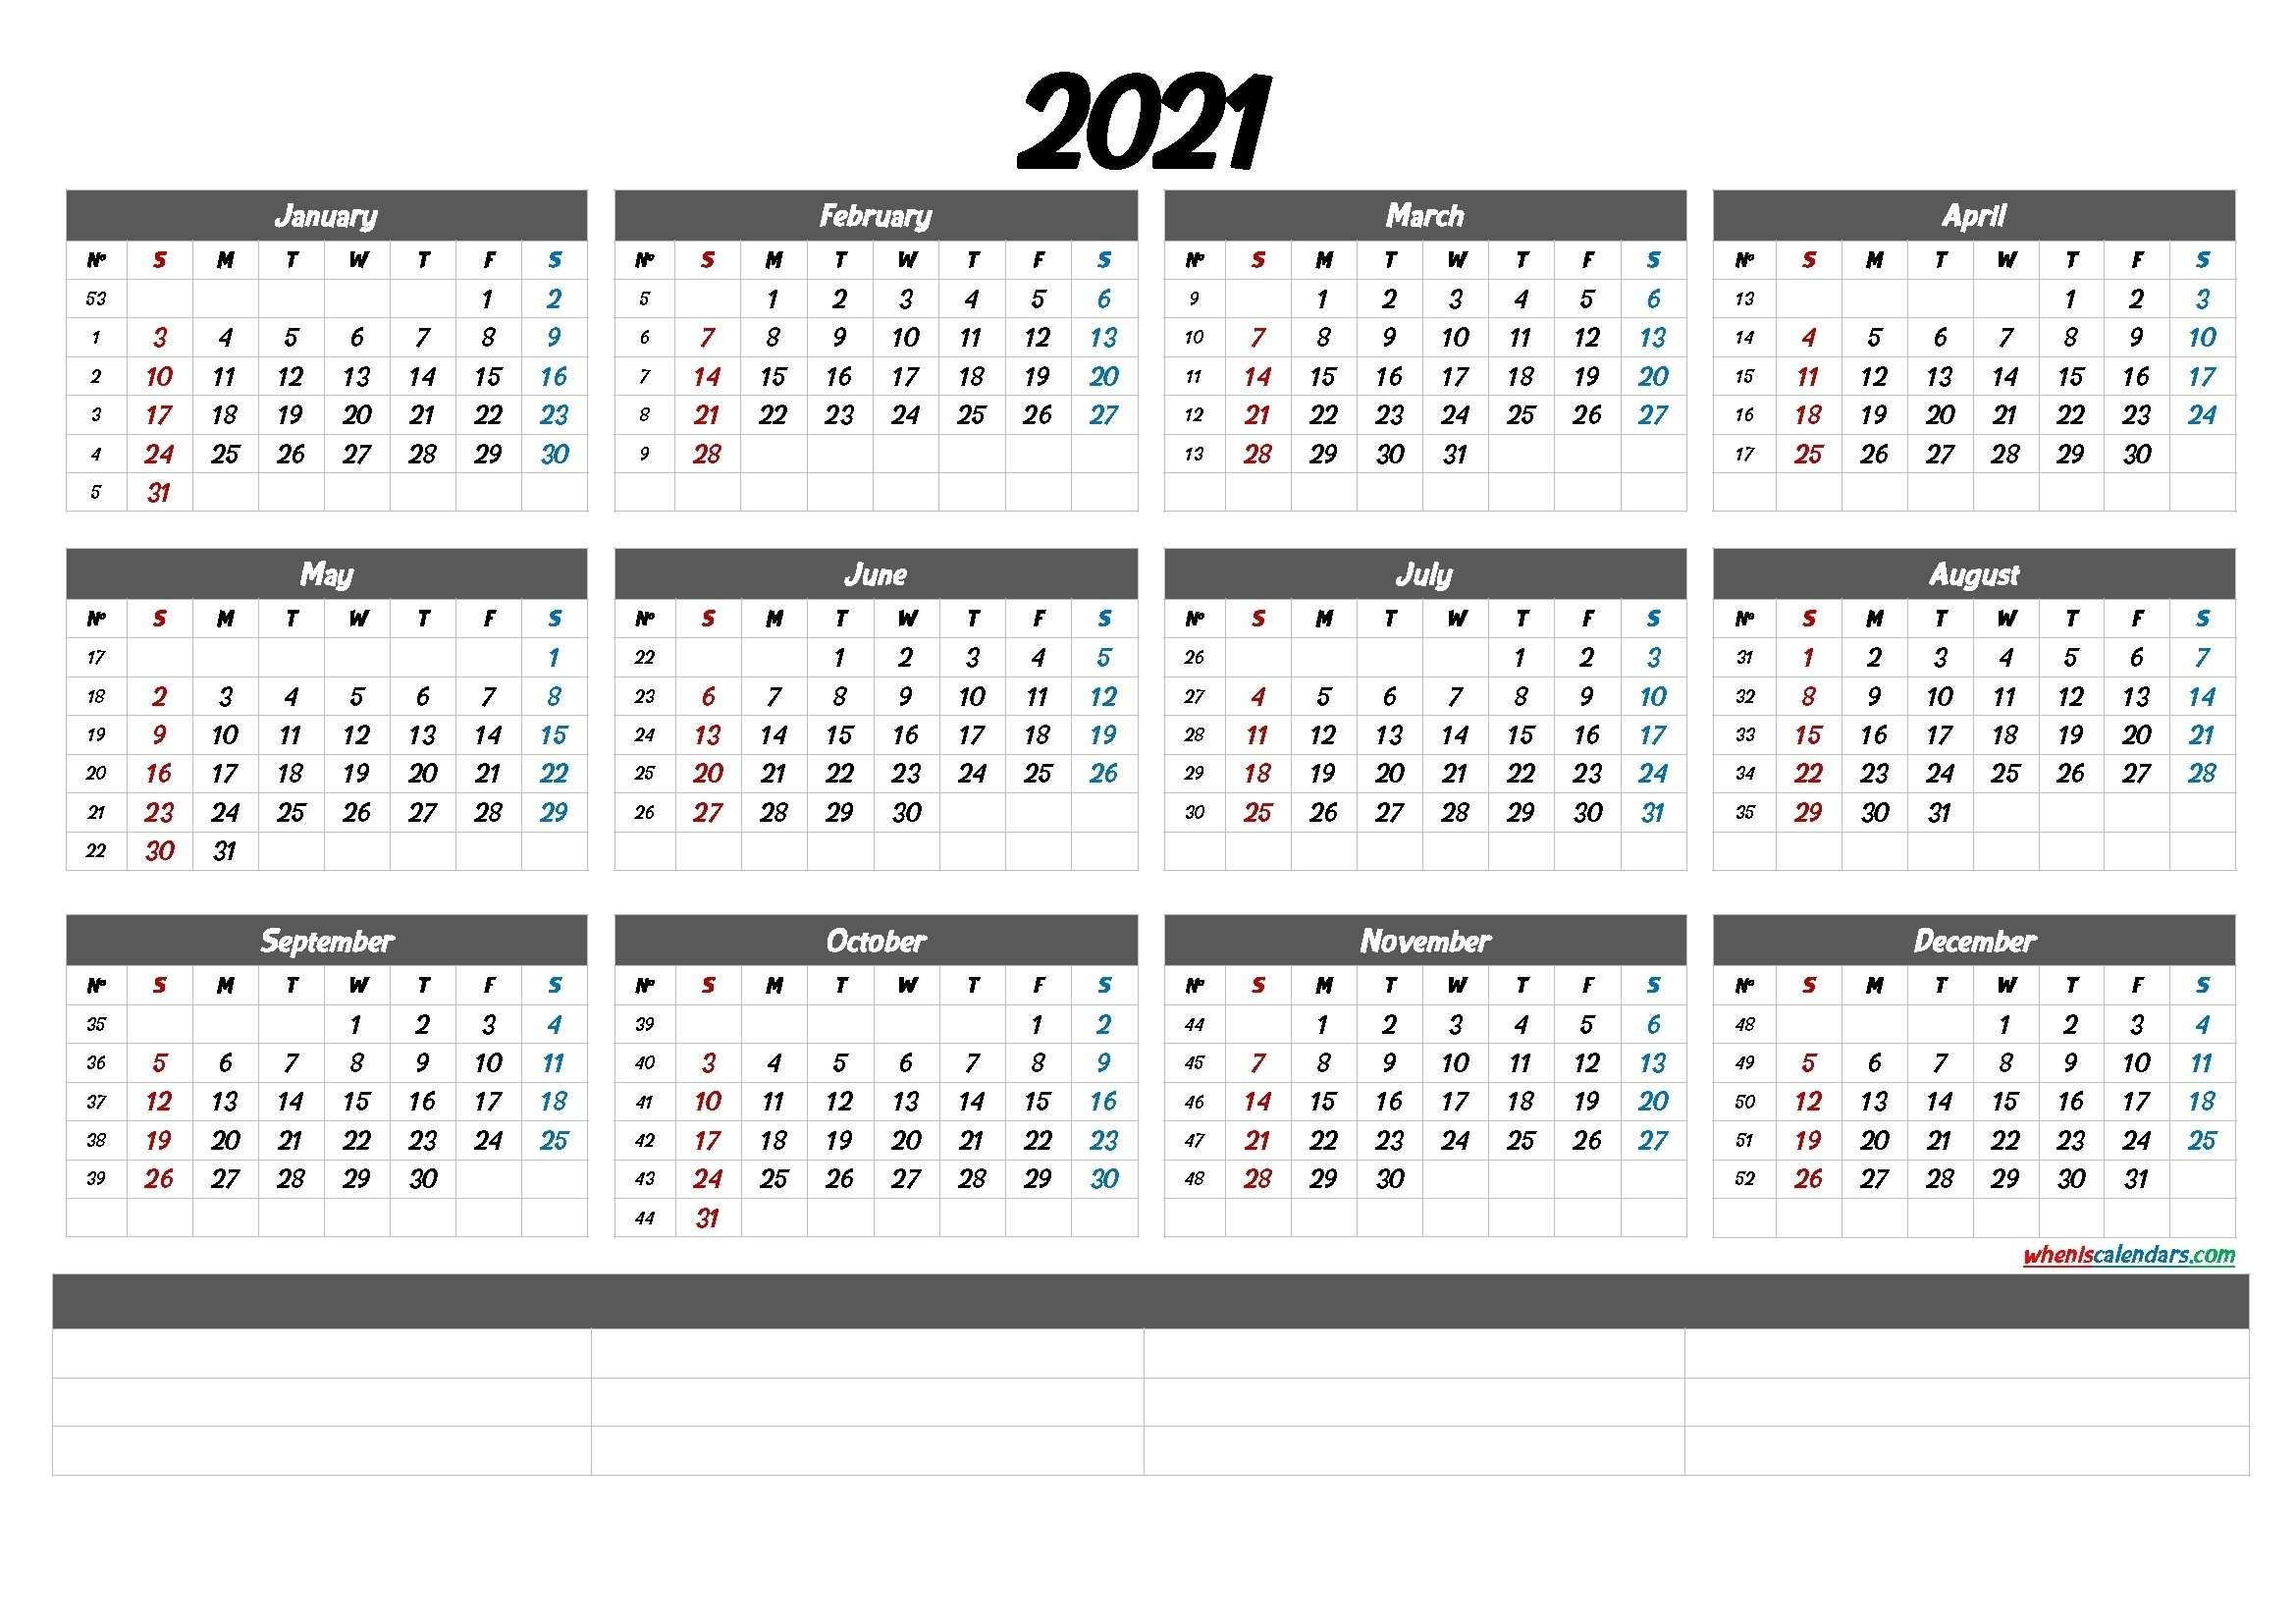 2021 Yearly Calendar With Week Number Printable | Ten Free Printable Calendar 2020-2021 intended for 2021 Monthly Calendar Printable Free Image